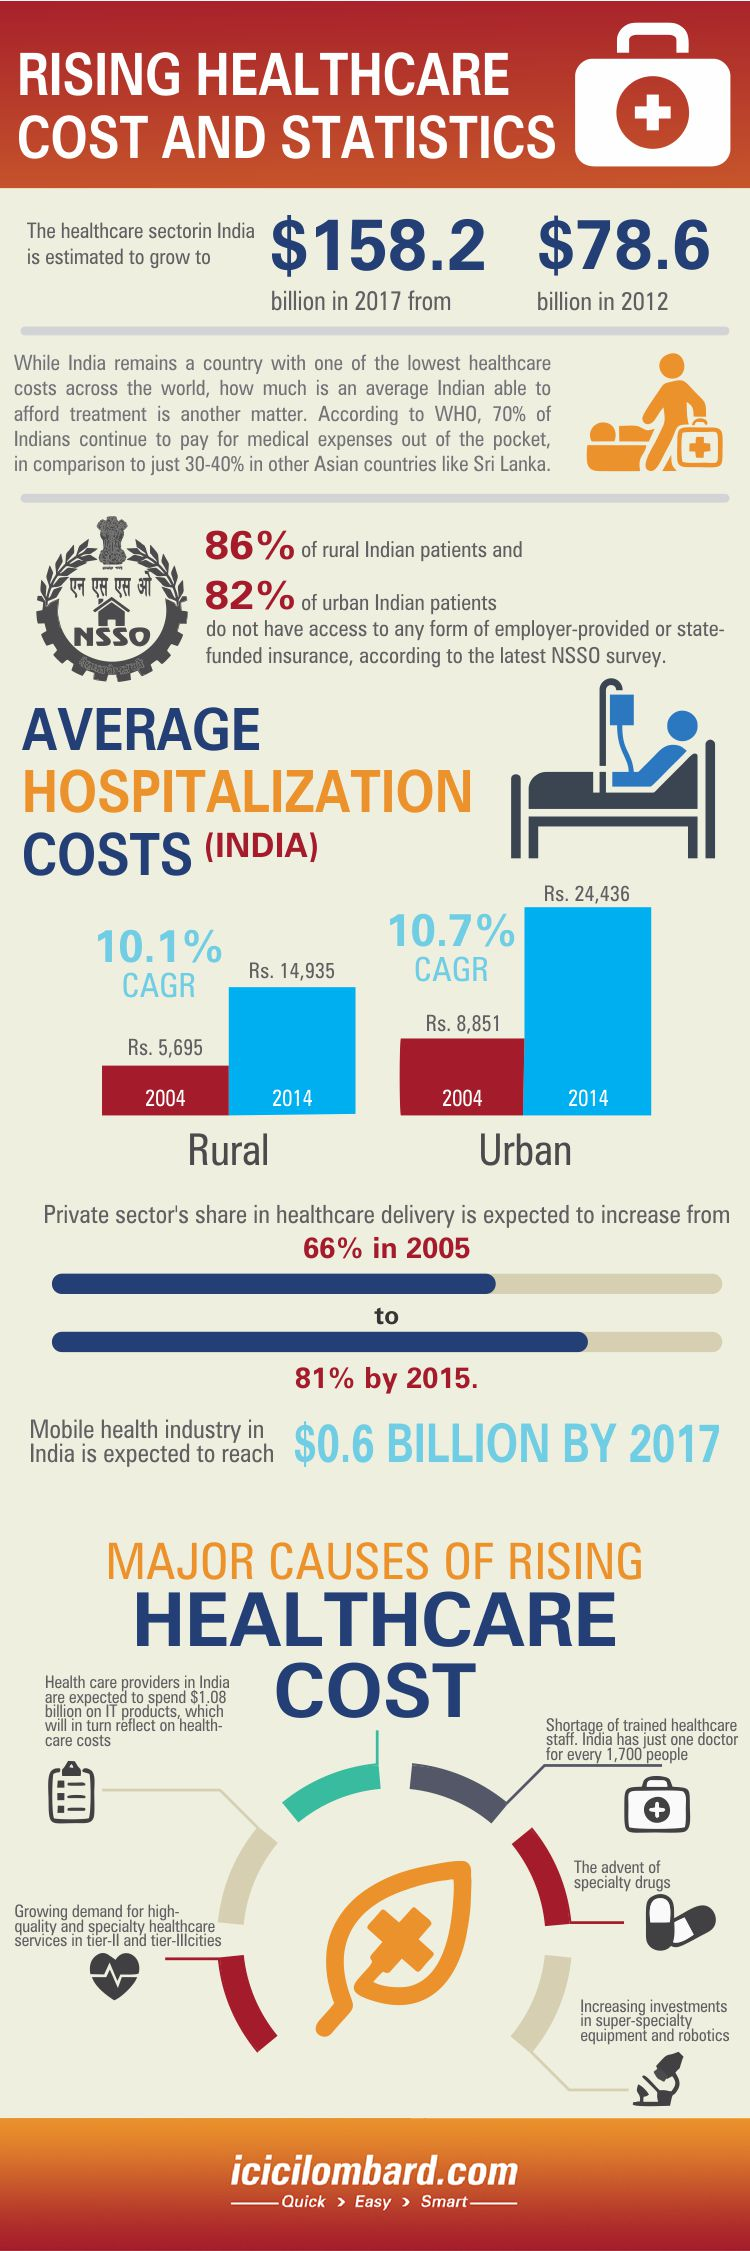 20151118-rising-healthcare-cost-and-statistics